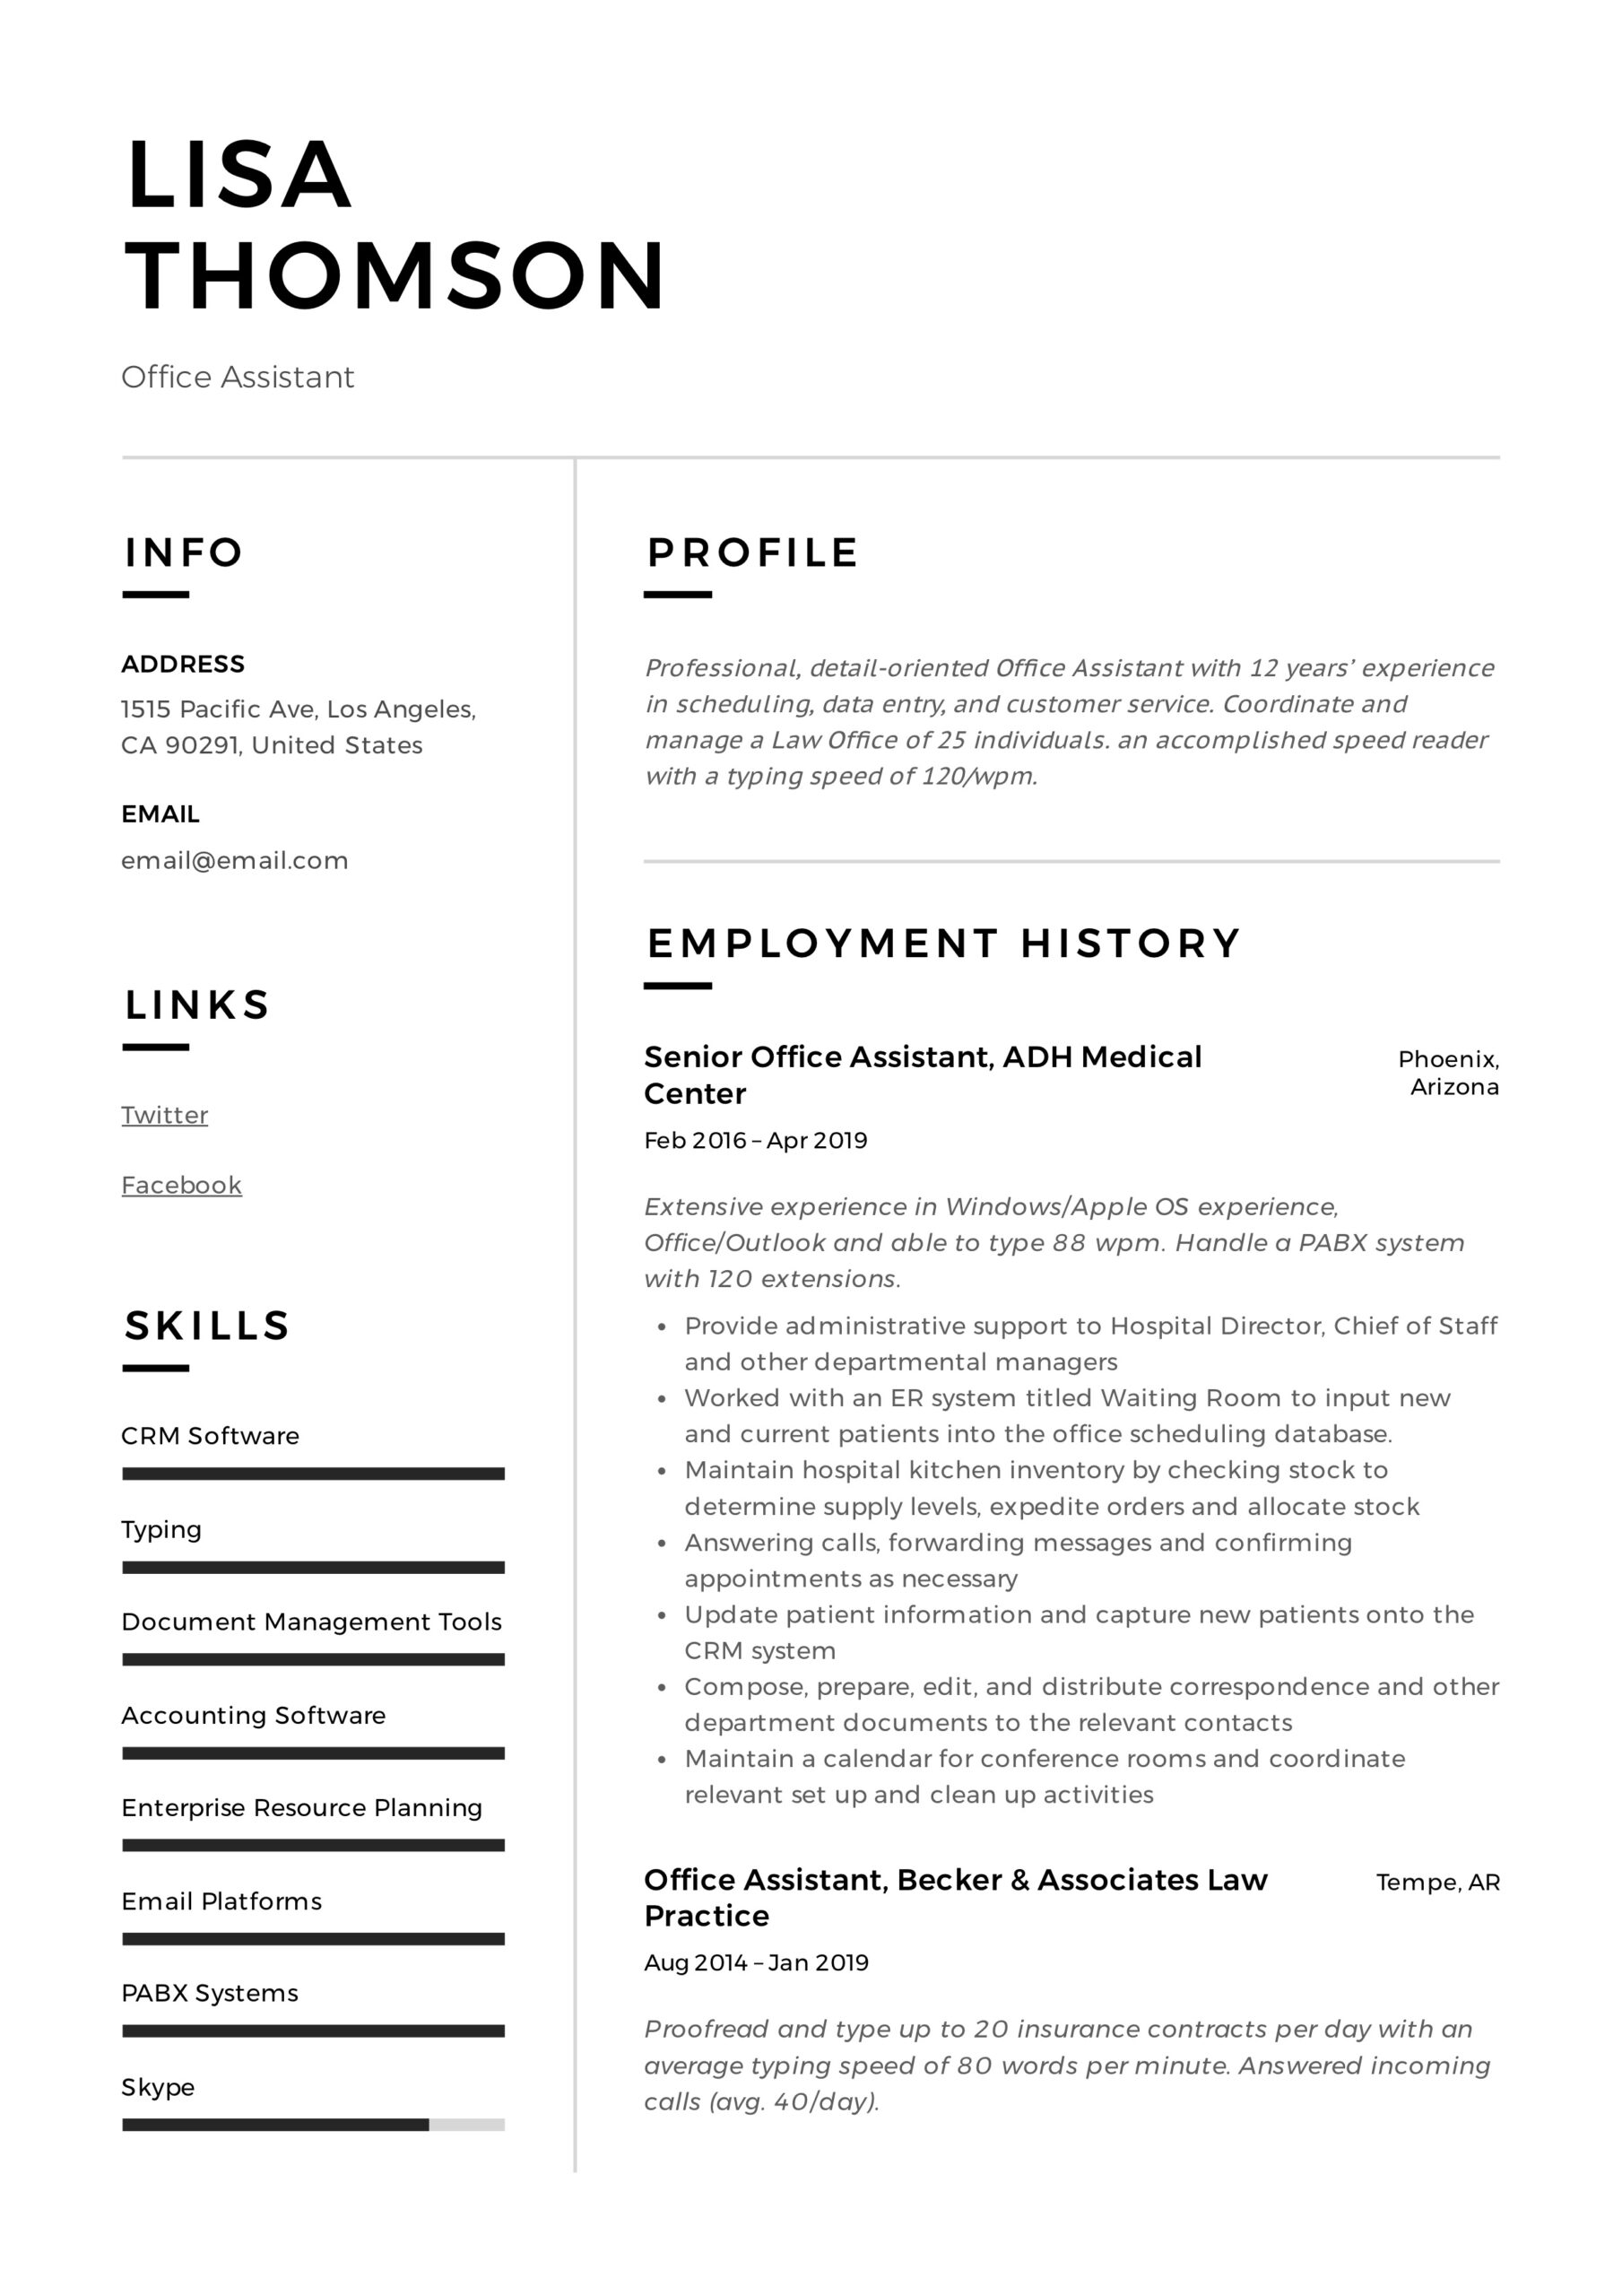 office assistant resume writing guide templates summary lisa thomson senior accountant Resume Office Assistant Resume Summary